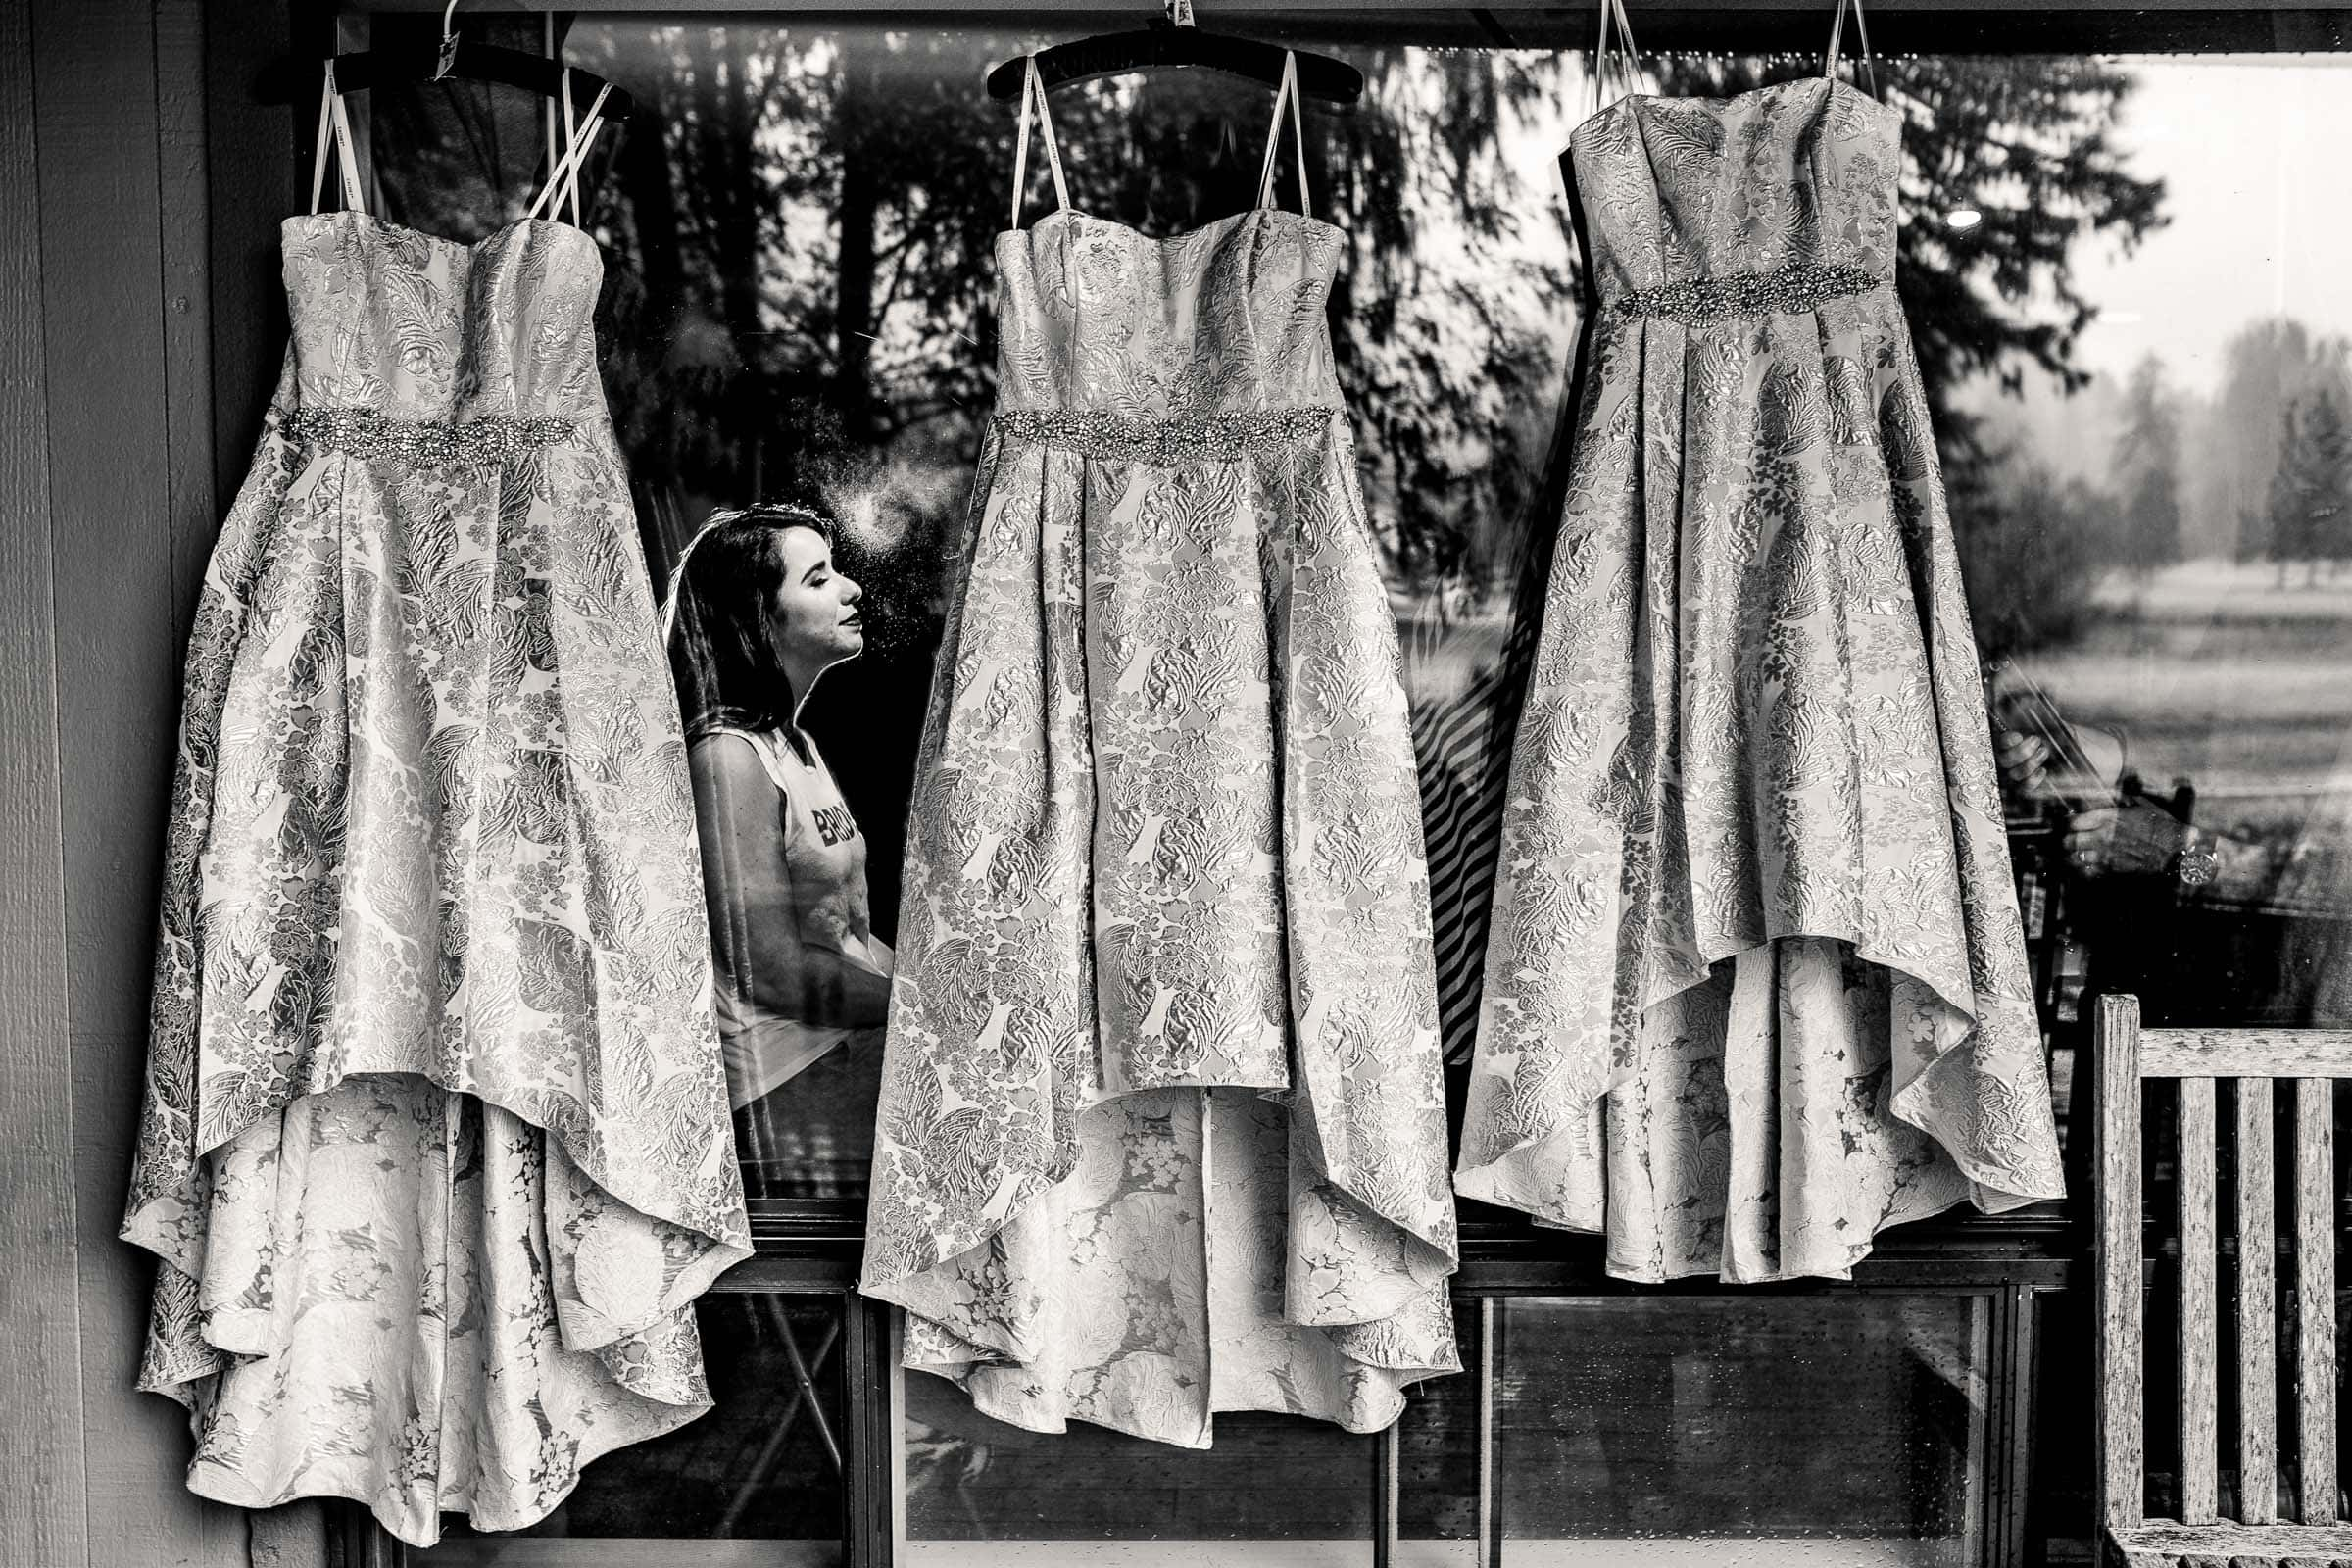 Bride getting ready with dresses and reflection at her Resort at the Mountain wedding in Oregon near Mt Hood.